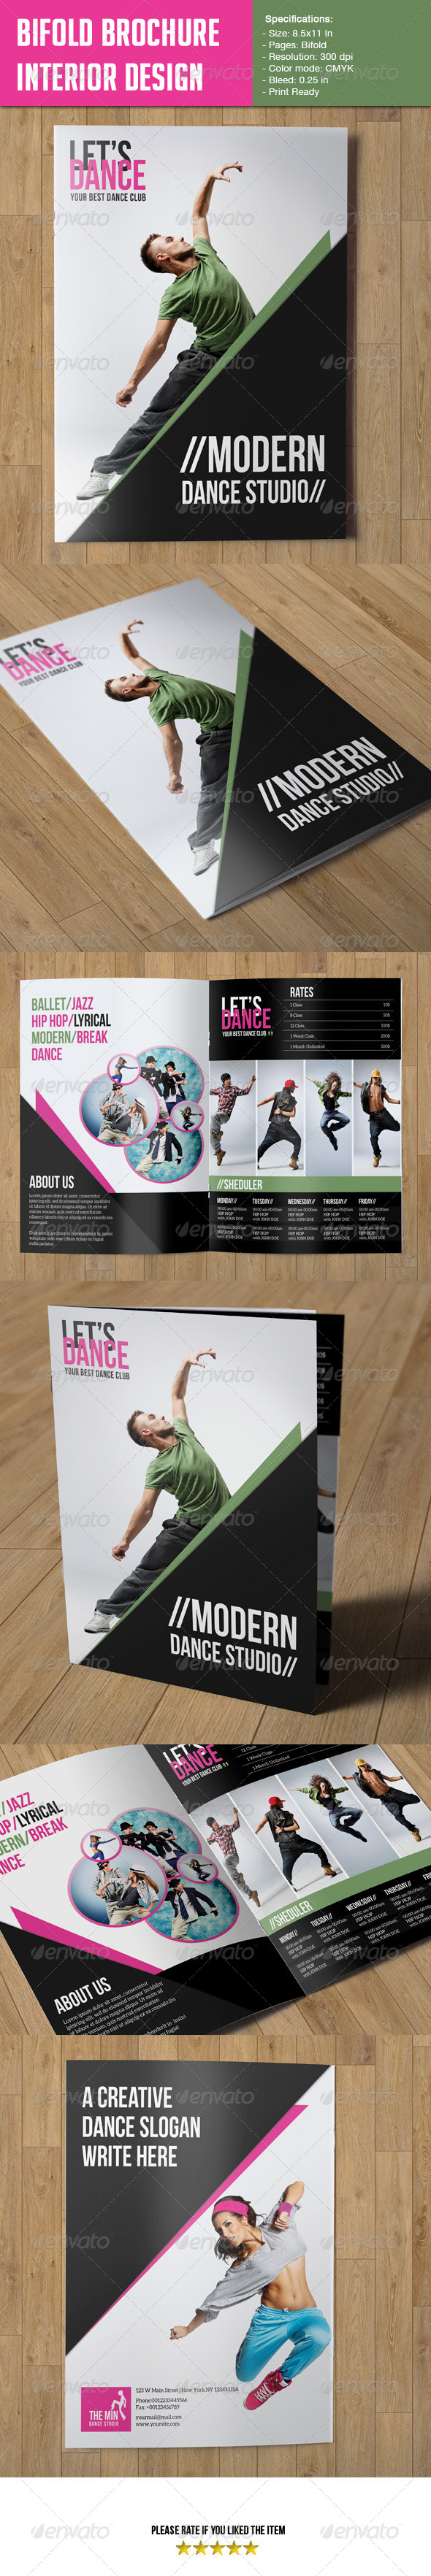 GraphicRiver Bifold Brochure-Dance Studio 6569544